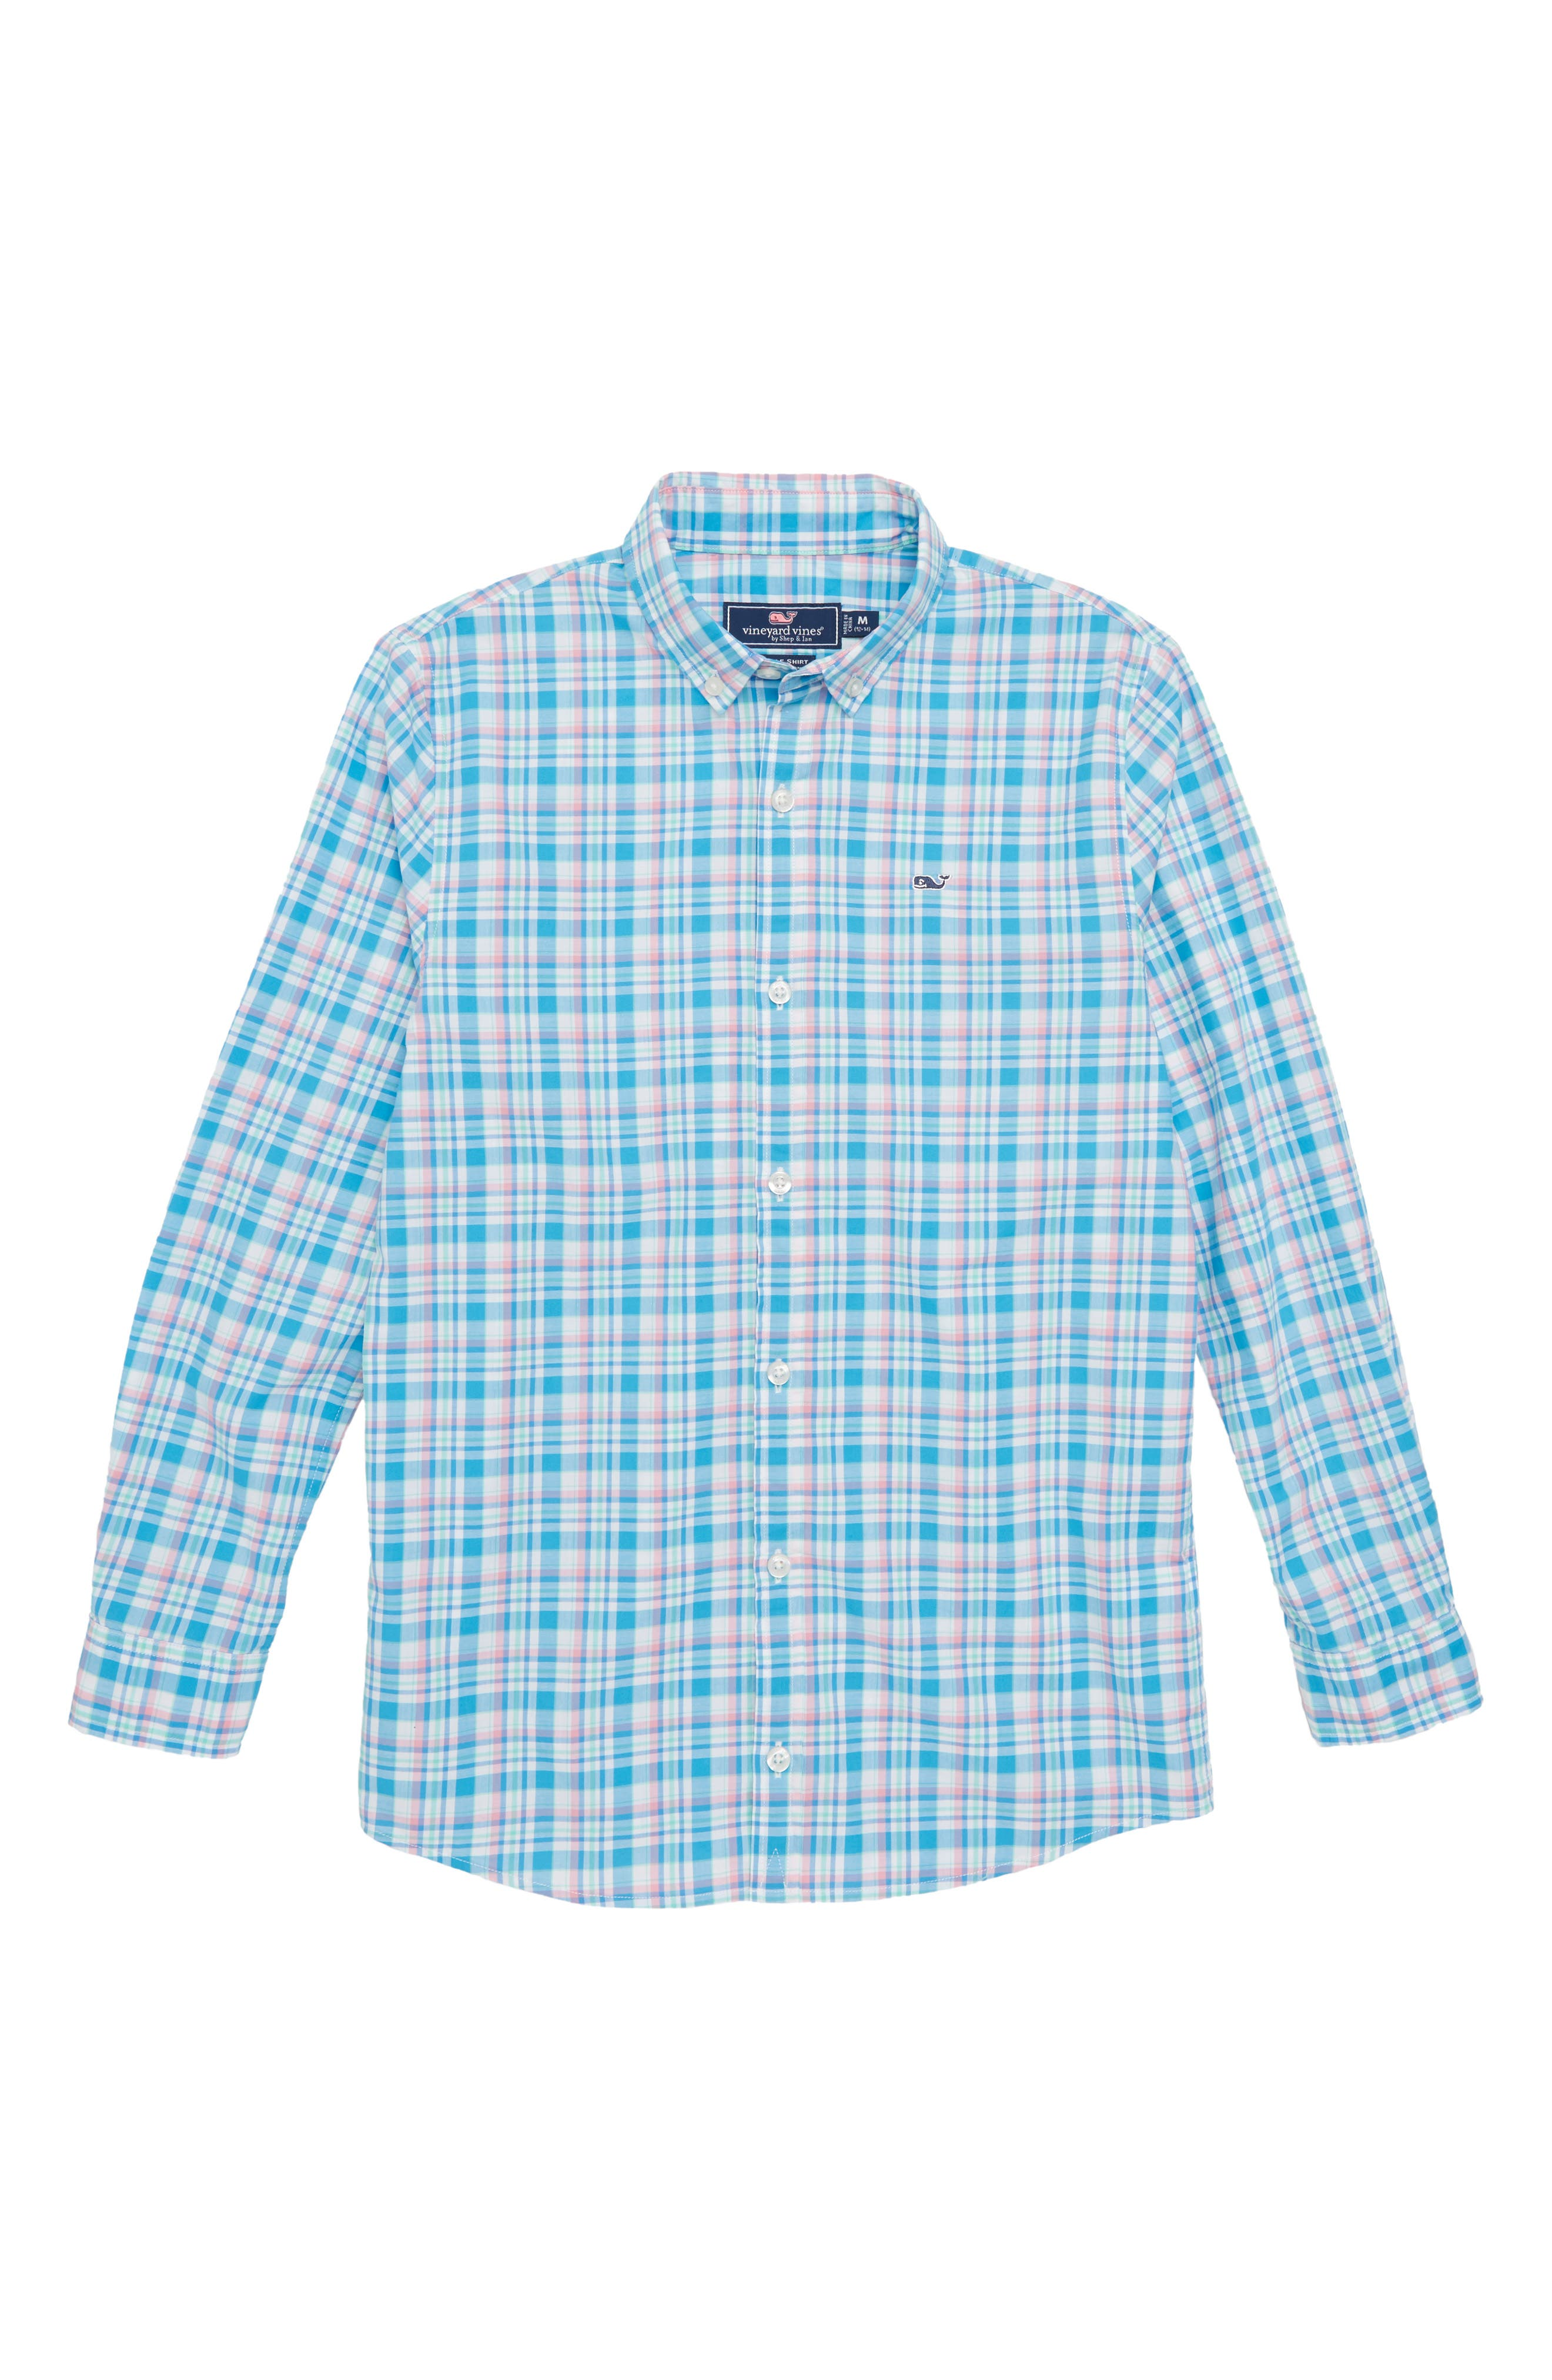 Pinmy's Point Plaid Whale Shirt,                         Main,                         color, 412